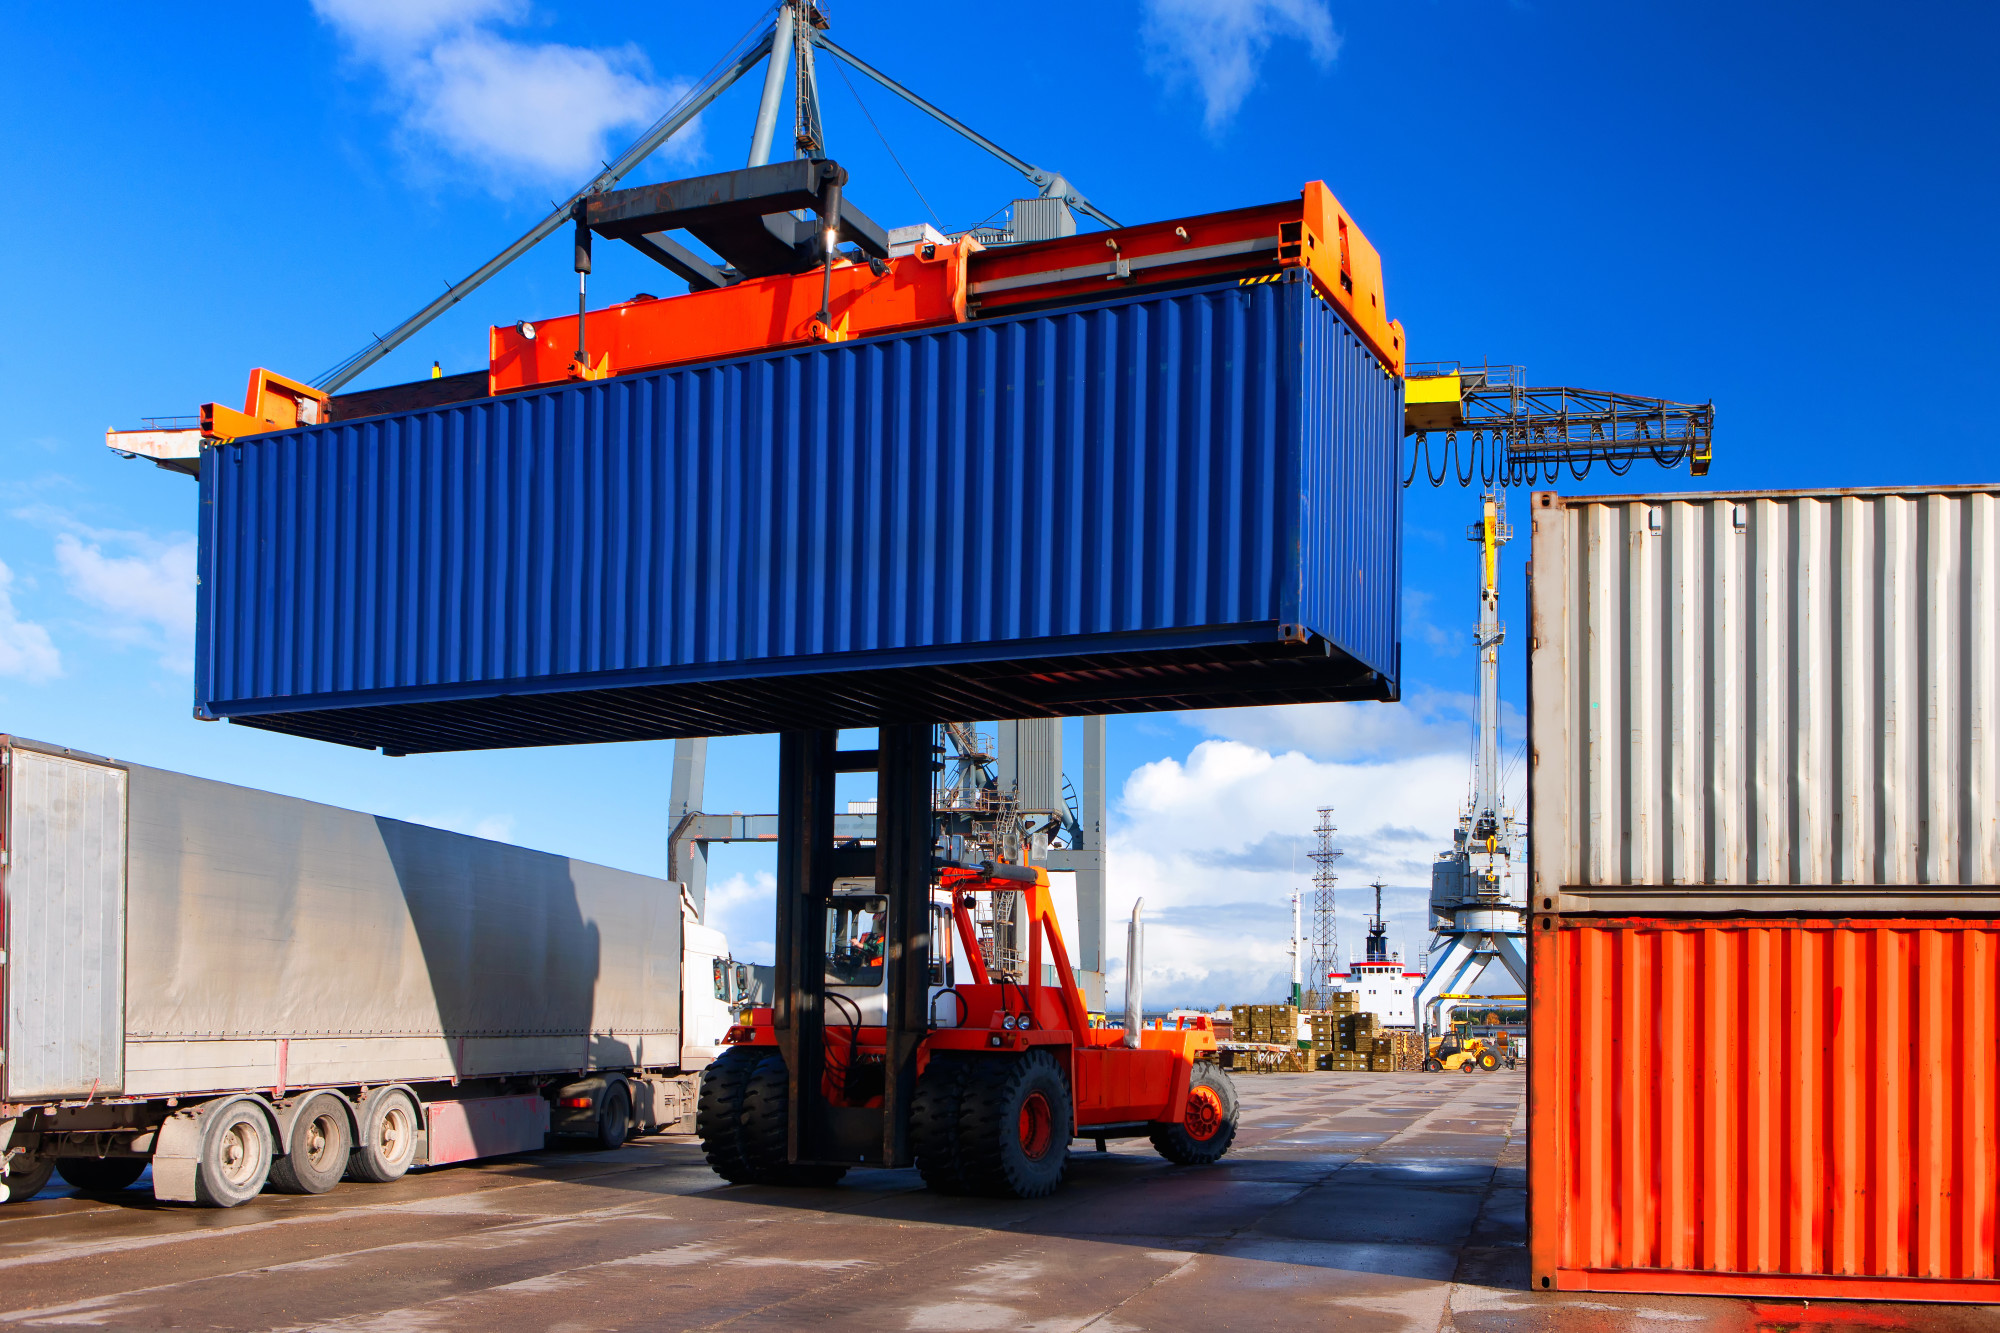 How Much Does a Shipping Container Cost on Average?